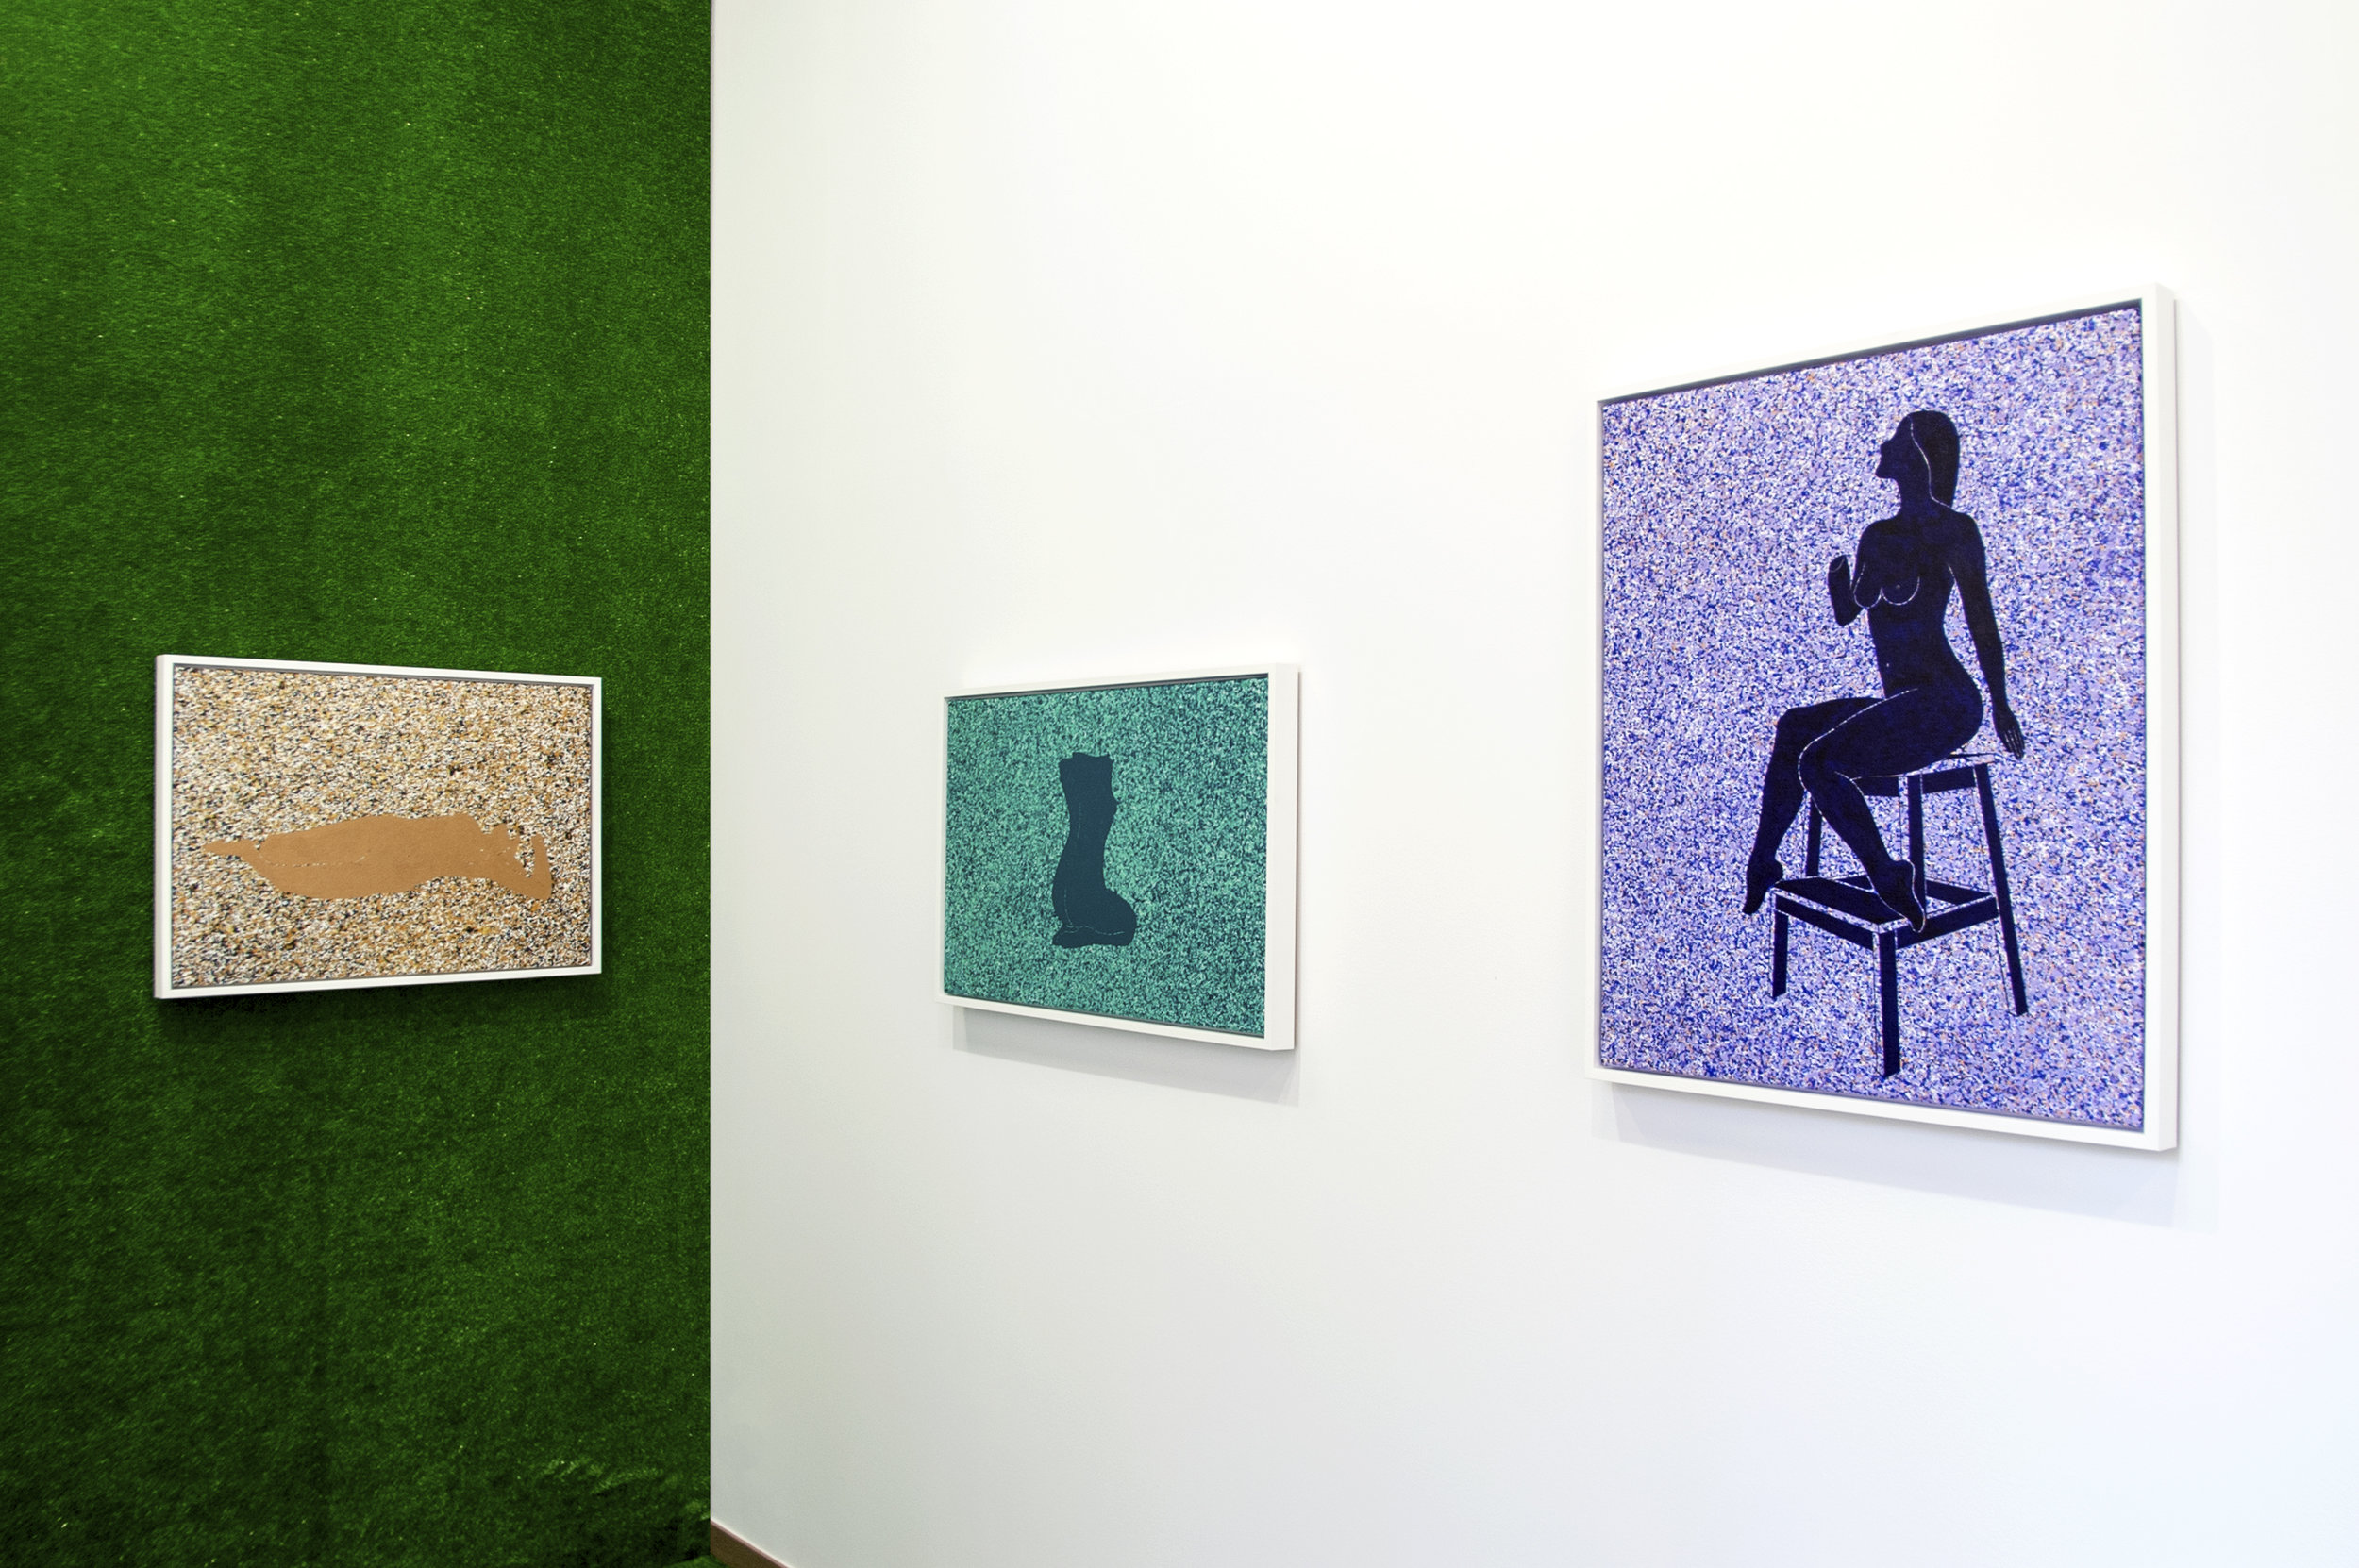 Skoya Assémat-Tessandier, 'Le petit Jardin des Songes', The Switch | Cabinet de l'Art, 2018